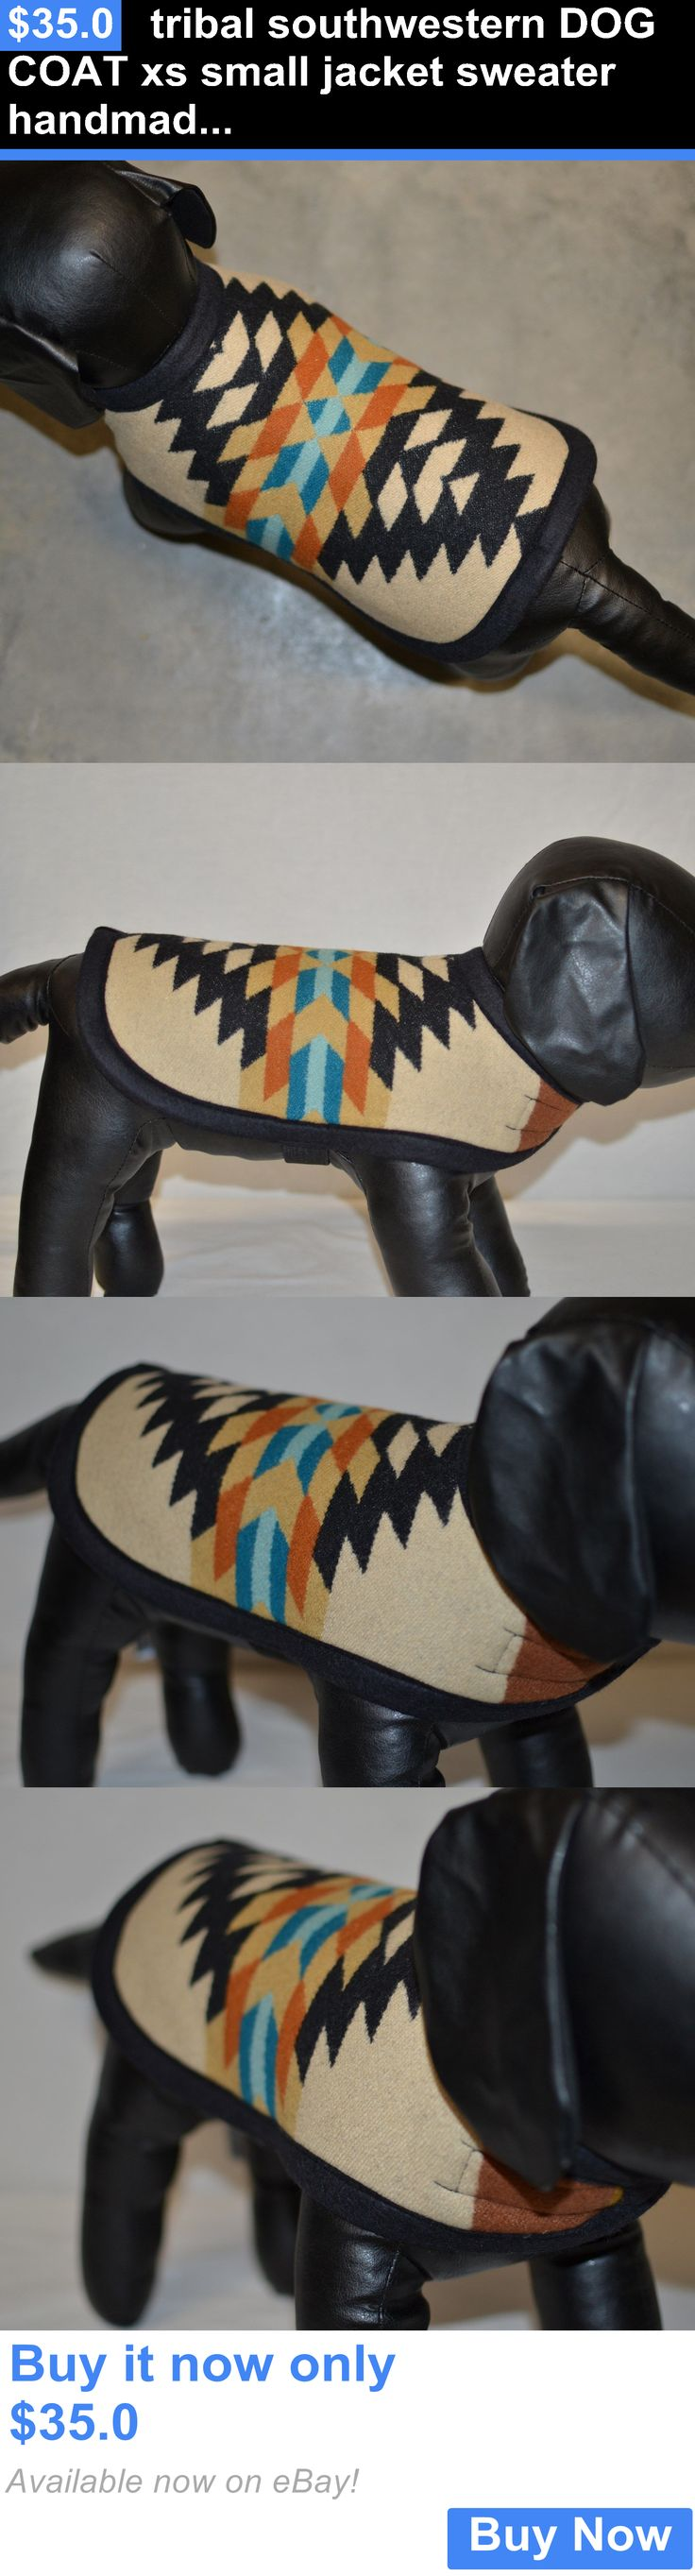 Pet Supplies: Tribal Southwestern Dog Coat Xs Small Jacket Sweater Handmade Pendleton Fabric BUY IT NOW ONLY: $35.0